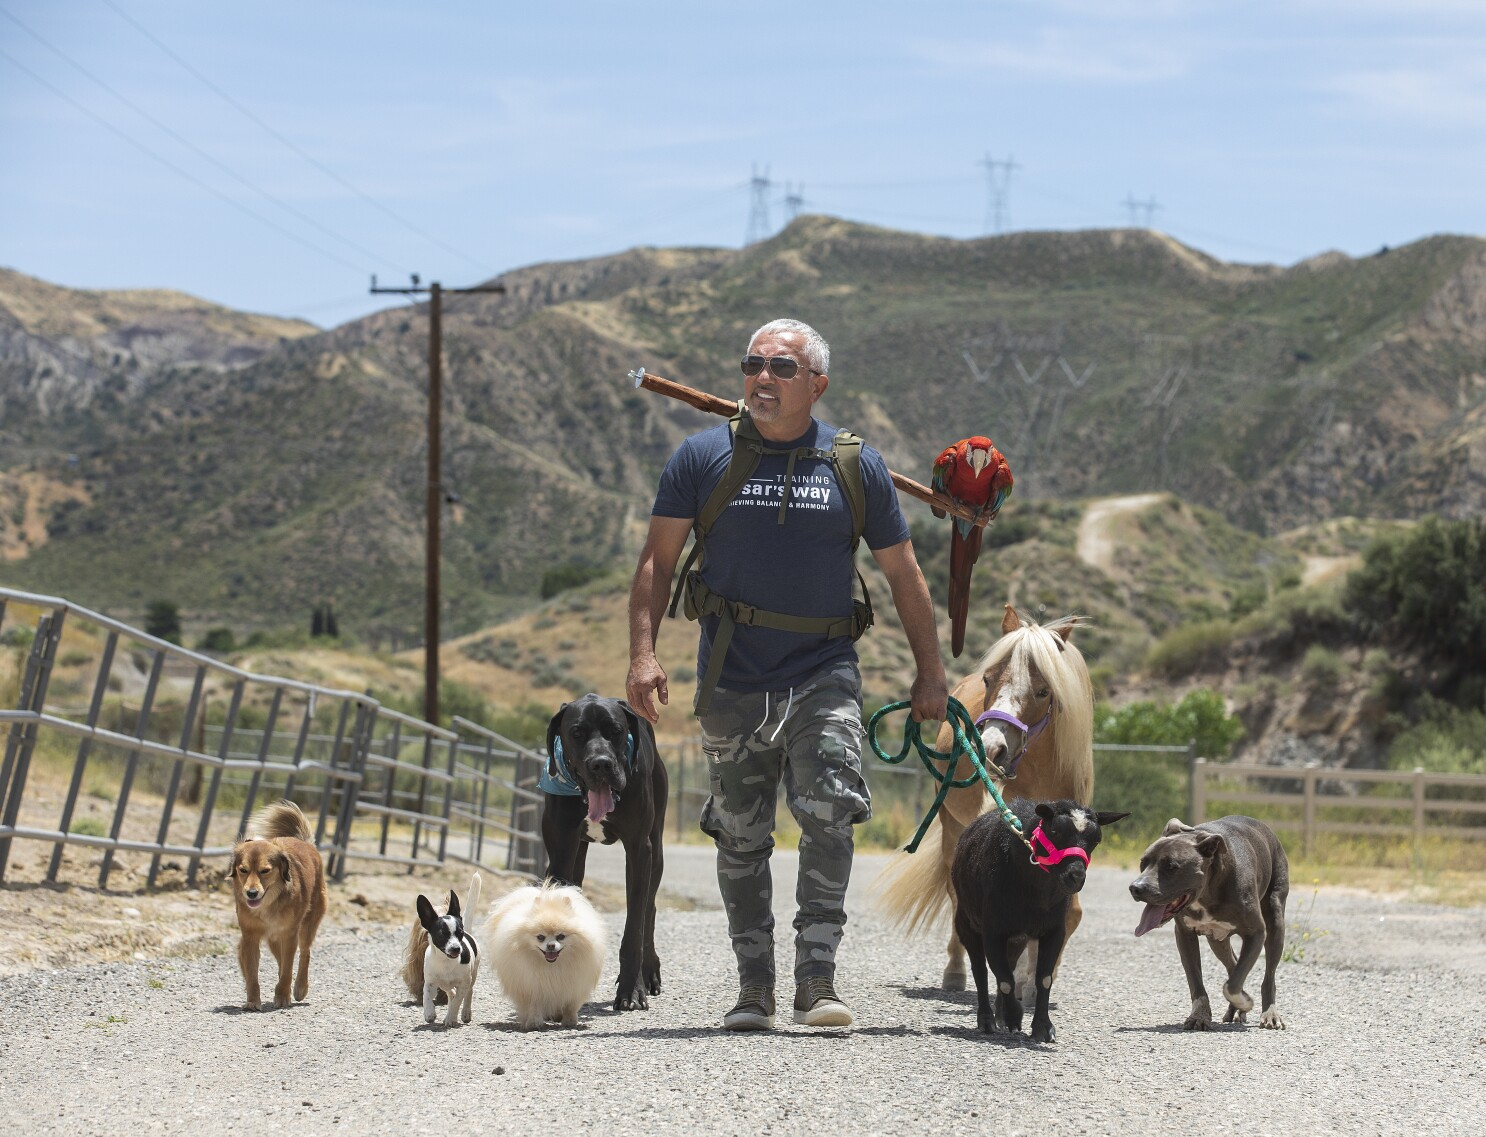 Dog Whisperer' Cesar Millan offers tips for dog owners - Los Angeles Times